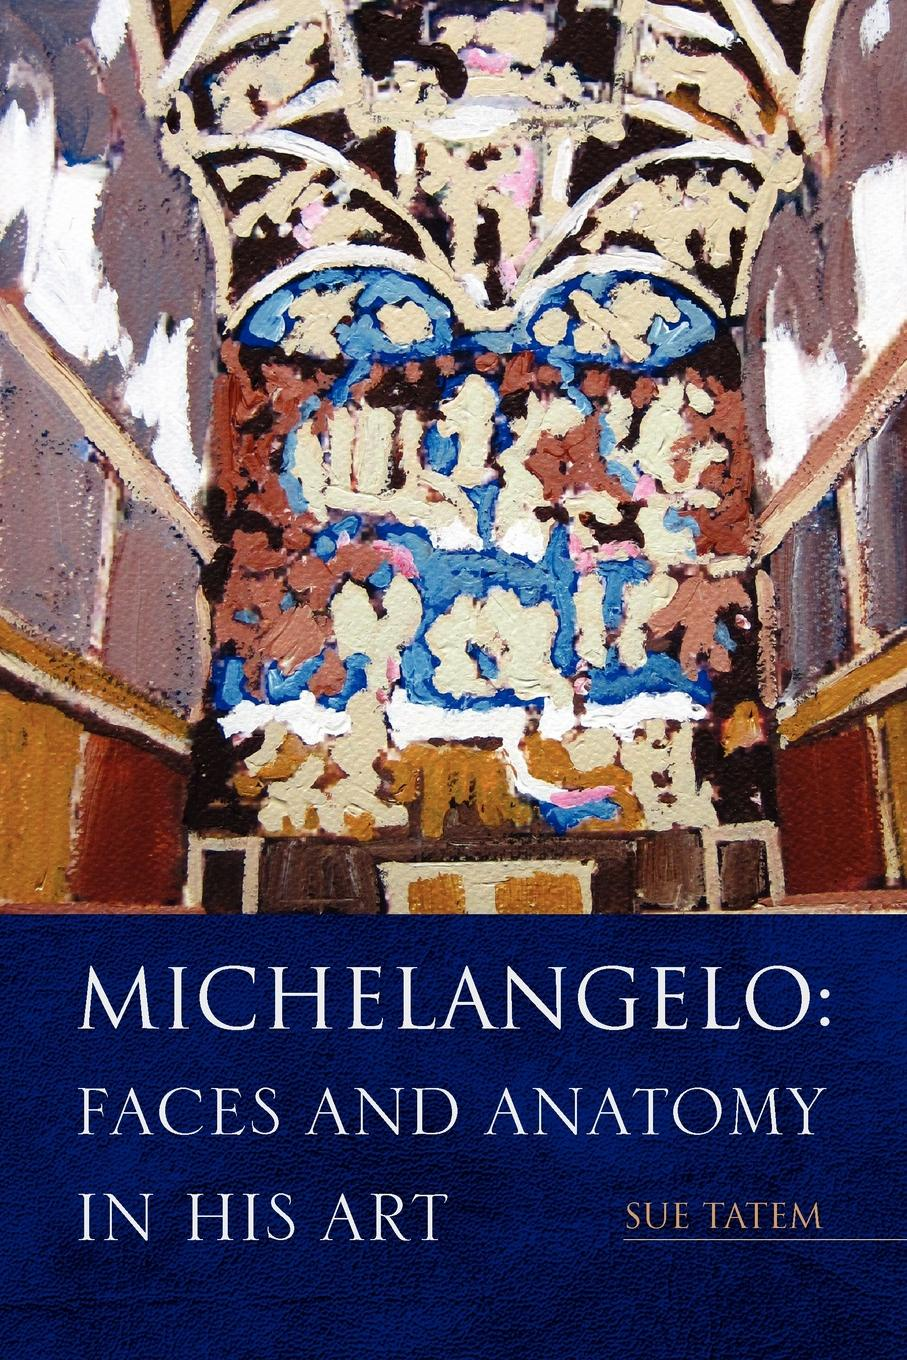 Sue Tatem Michelangelo. Faces and Anatomy in His Art